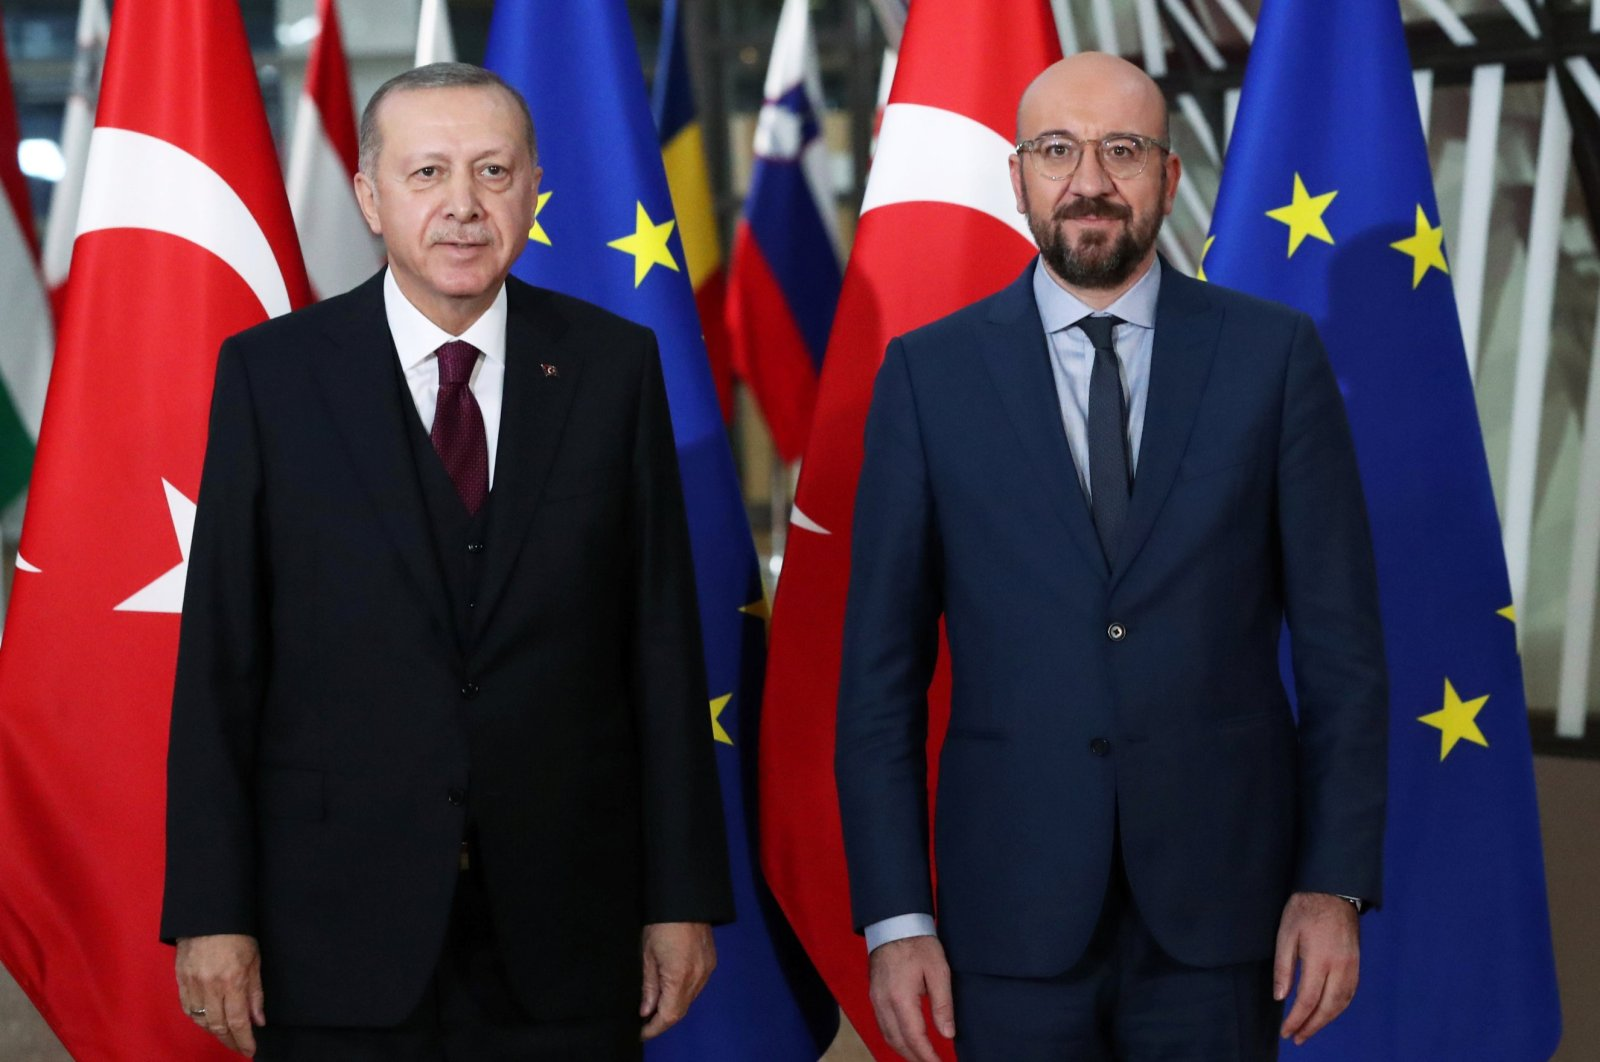 President Tayyip Erdoğan and EU Council President Charles Michel pose in Brussels, Belgium March 9, 2020. (REUTERS)